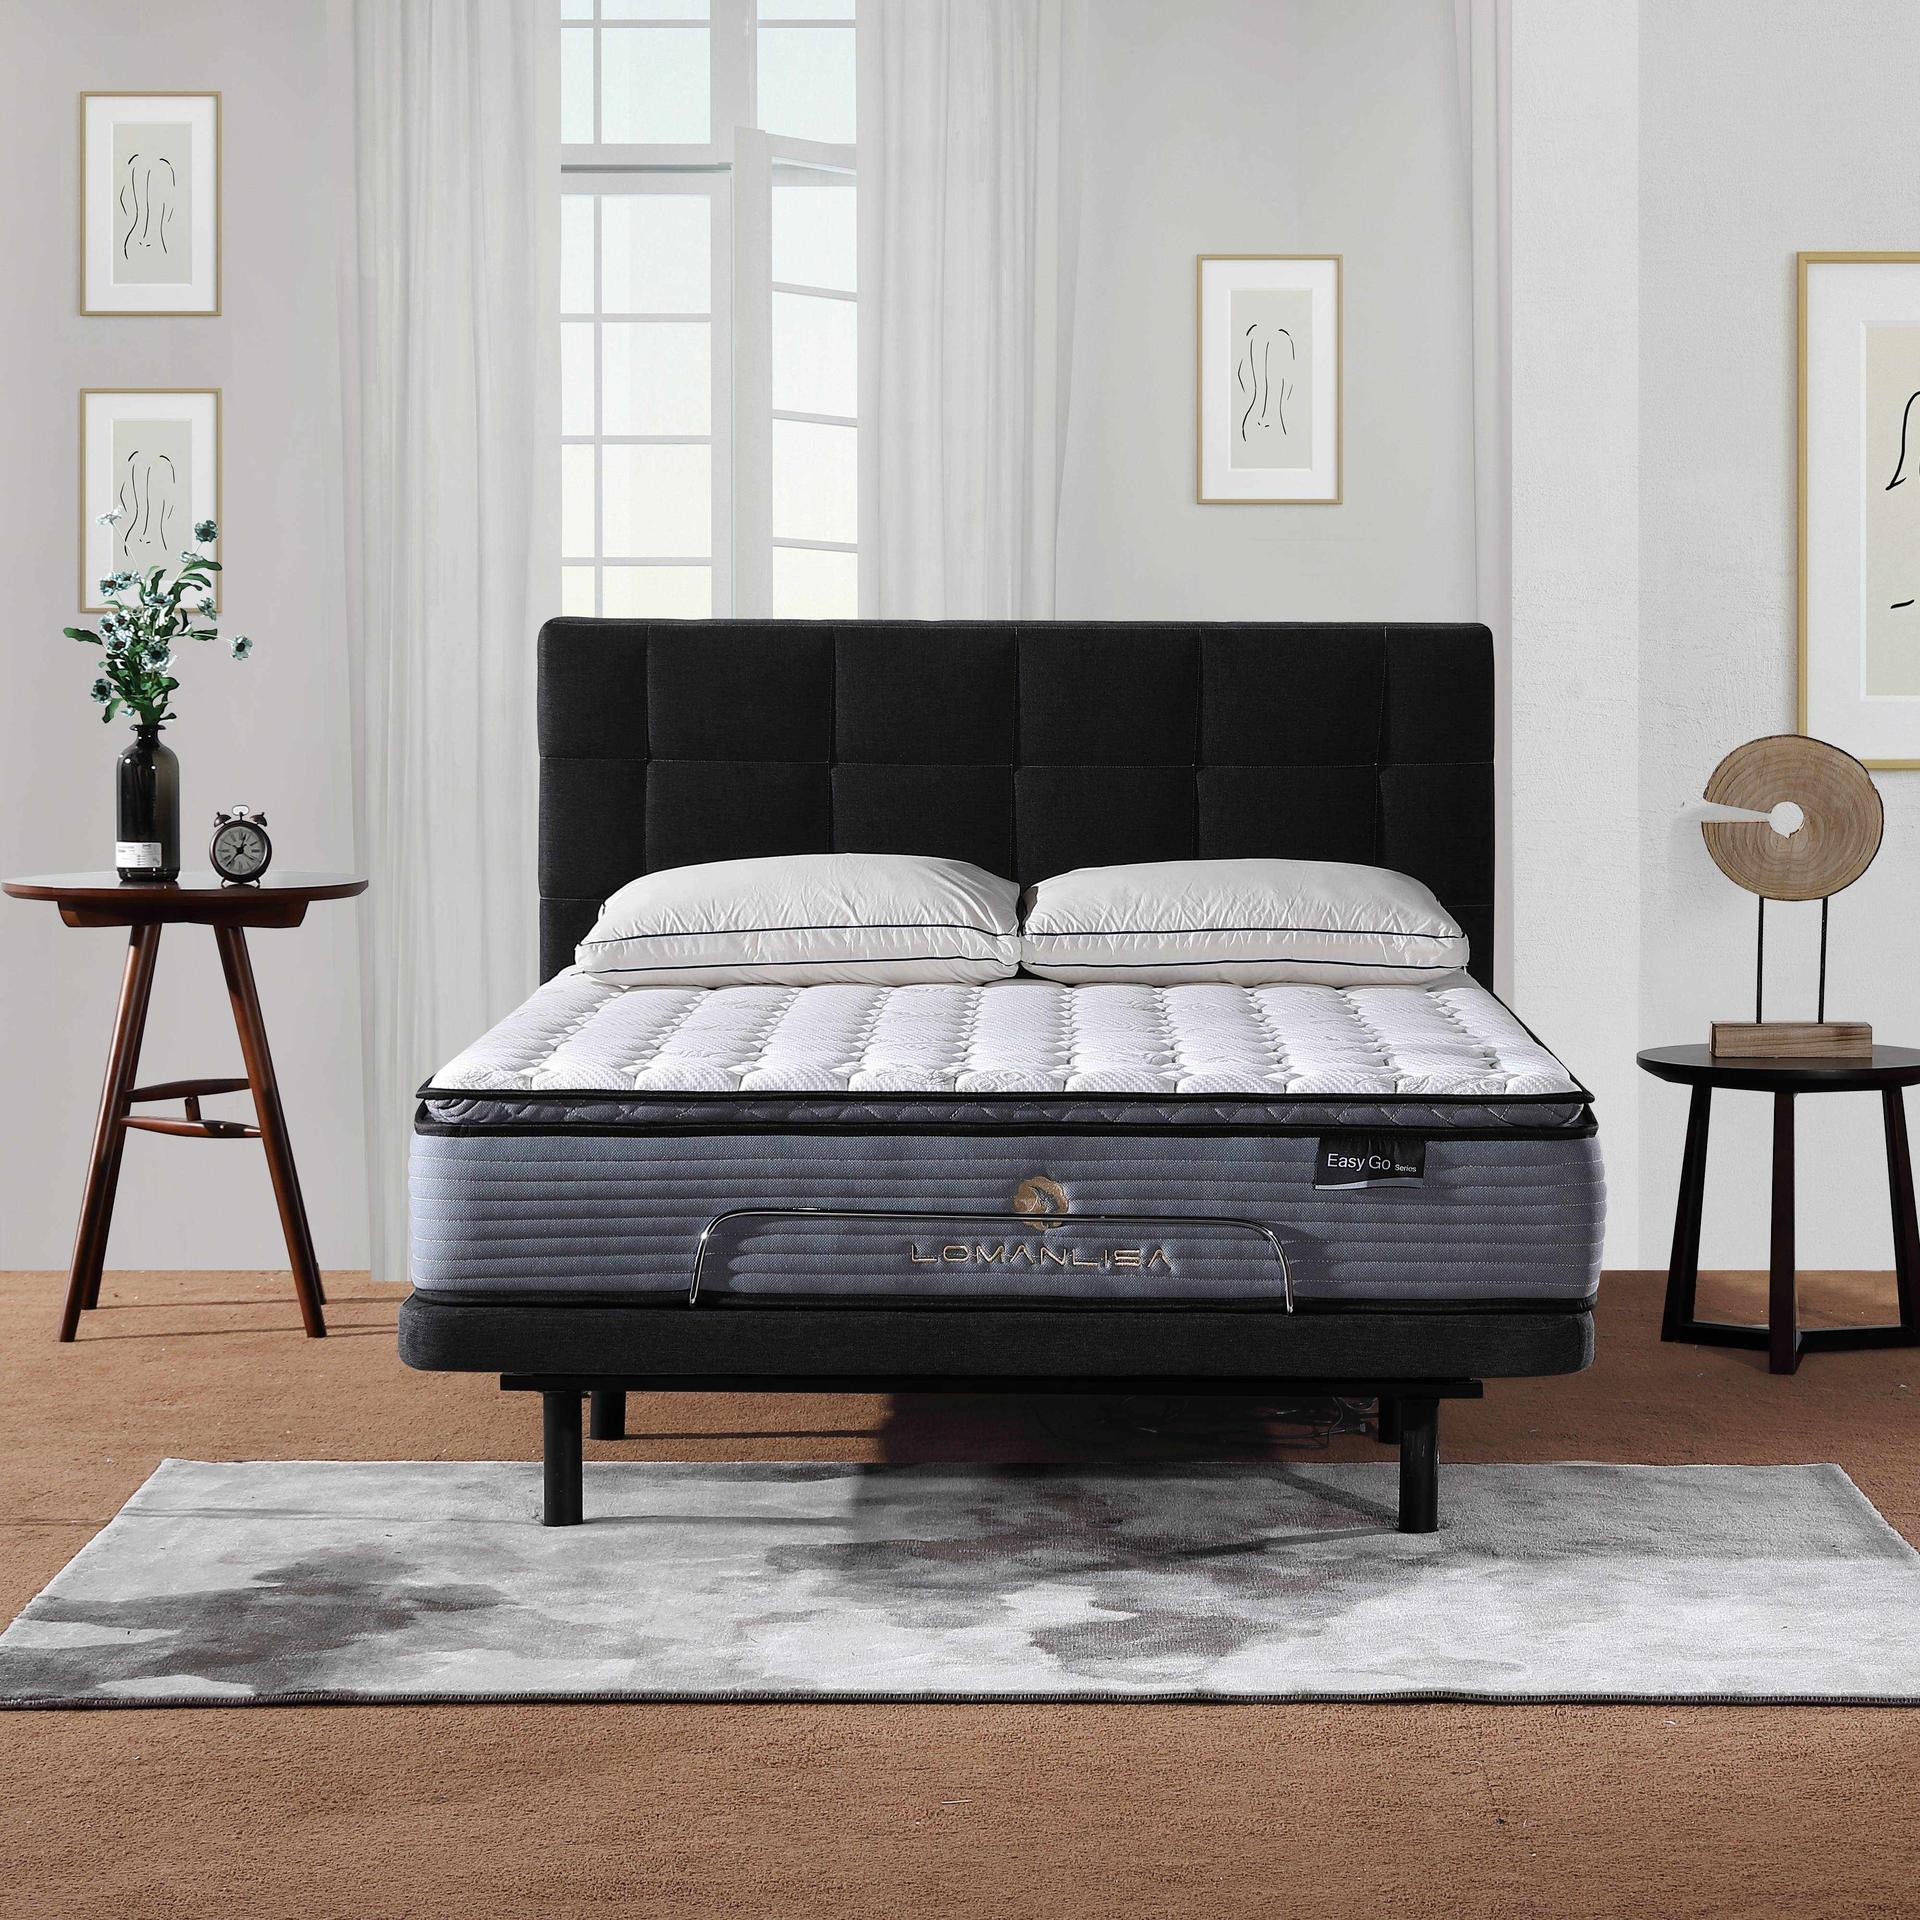 32PB-21 | Pillow Top Design Electric Adjustable Bed with Quiet and Stable Motor in King Queen Size